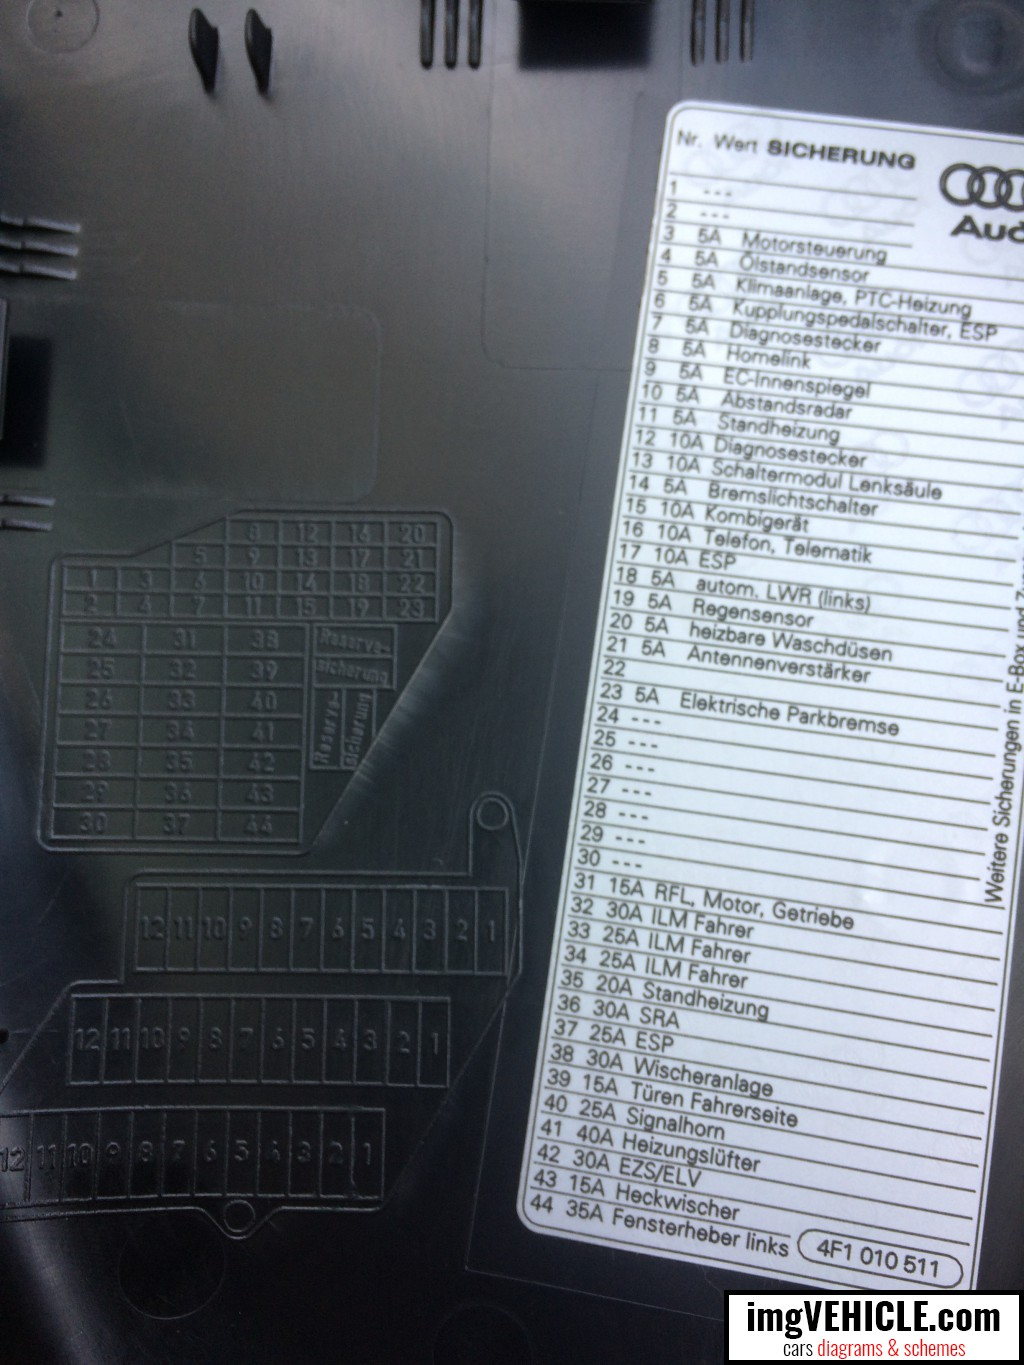 [SCHEMATICS_4UK]  Fuse Box In Audi A6 2004 - Honda Lawn Mower Fuel Filter Location -  schematics-sources.tehsusu.decorresine.it | 2005 Audi A6 Radio Fuse Box |  | Wiring Diagram Resource